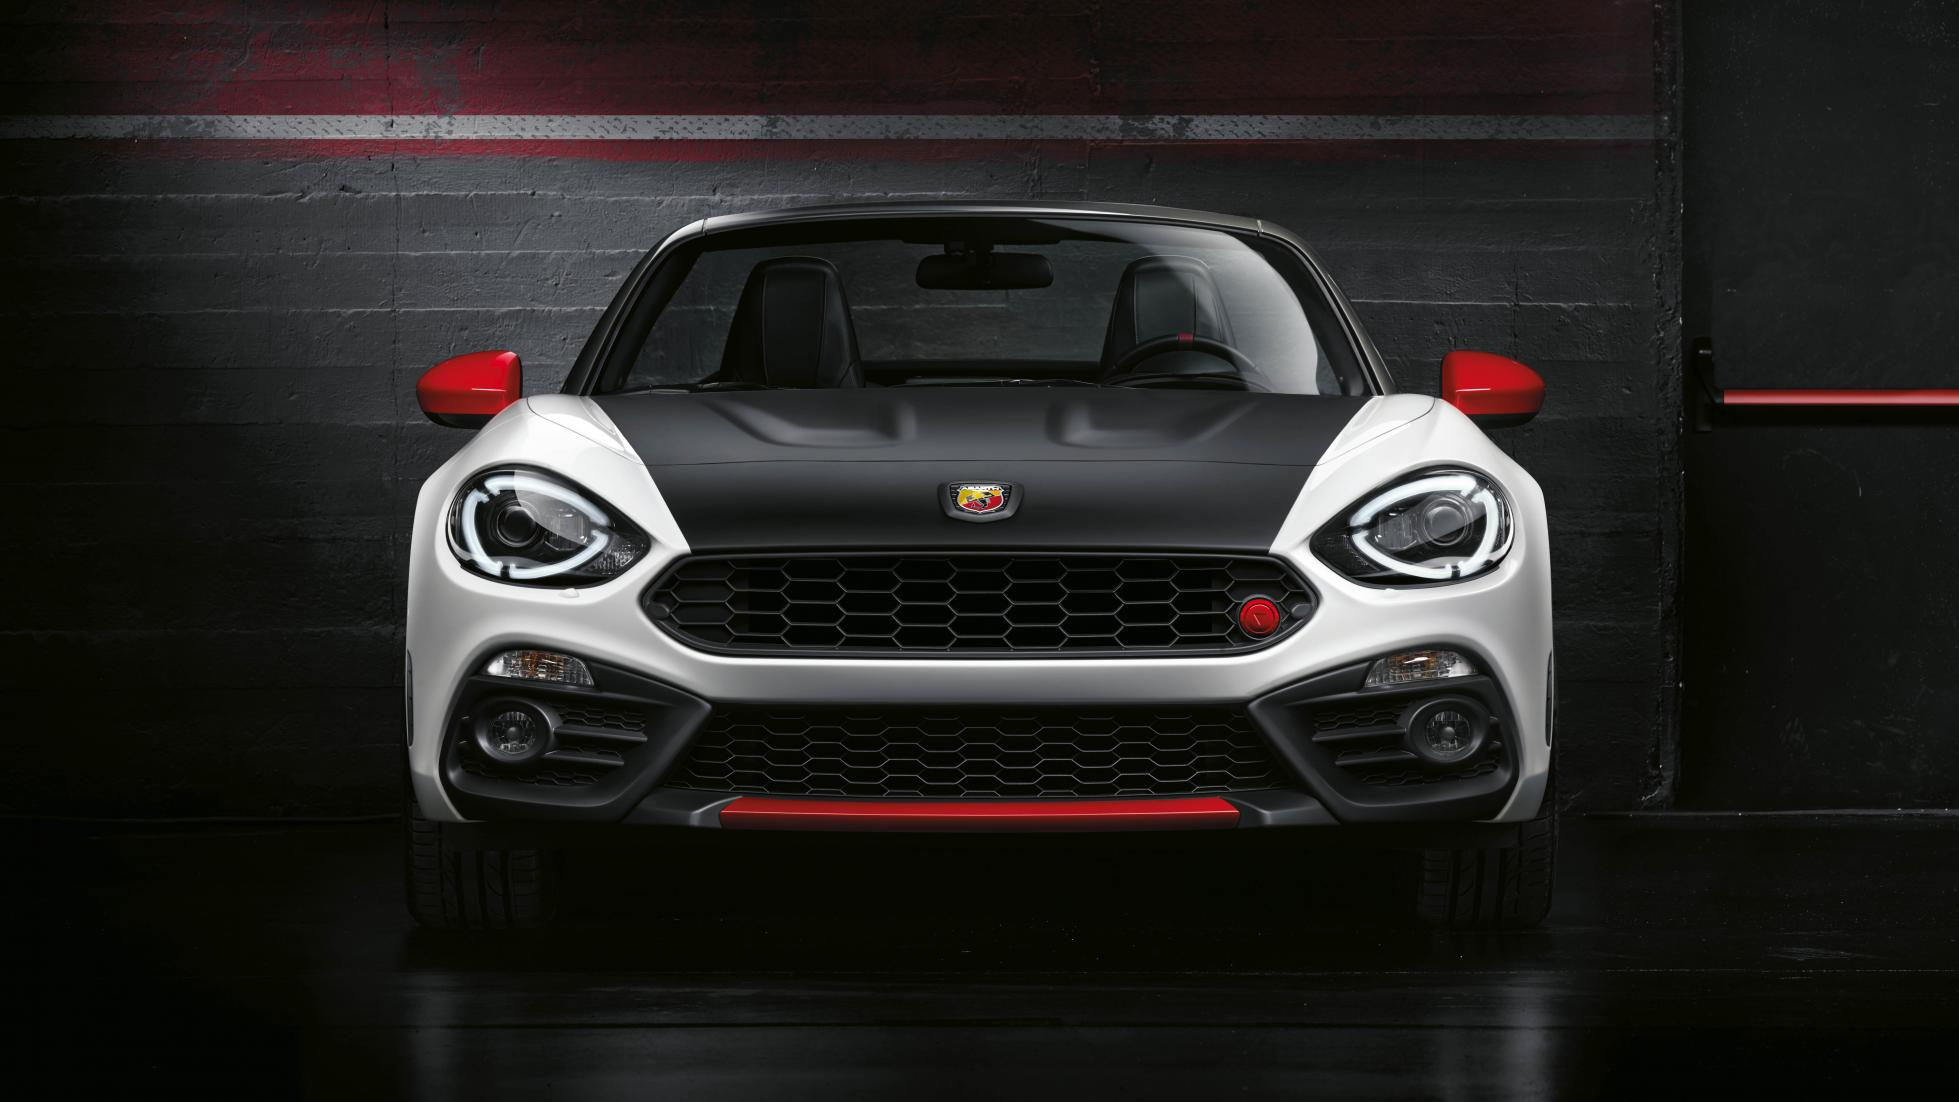 fiat abarth 124 spider 2016 review first drive carsguide fiat abarth galleries. Black Bedroom Furniture Sets. Home Design Ideas